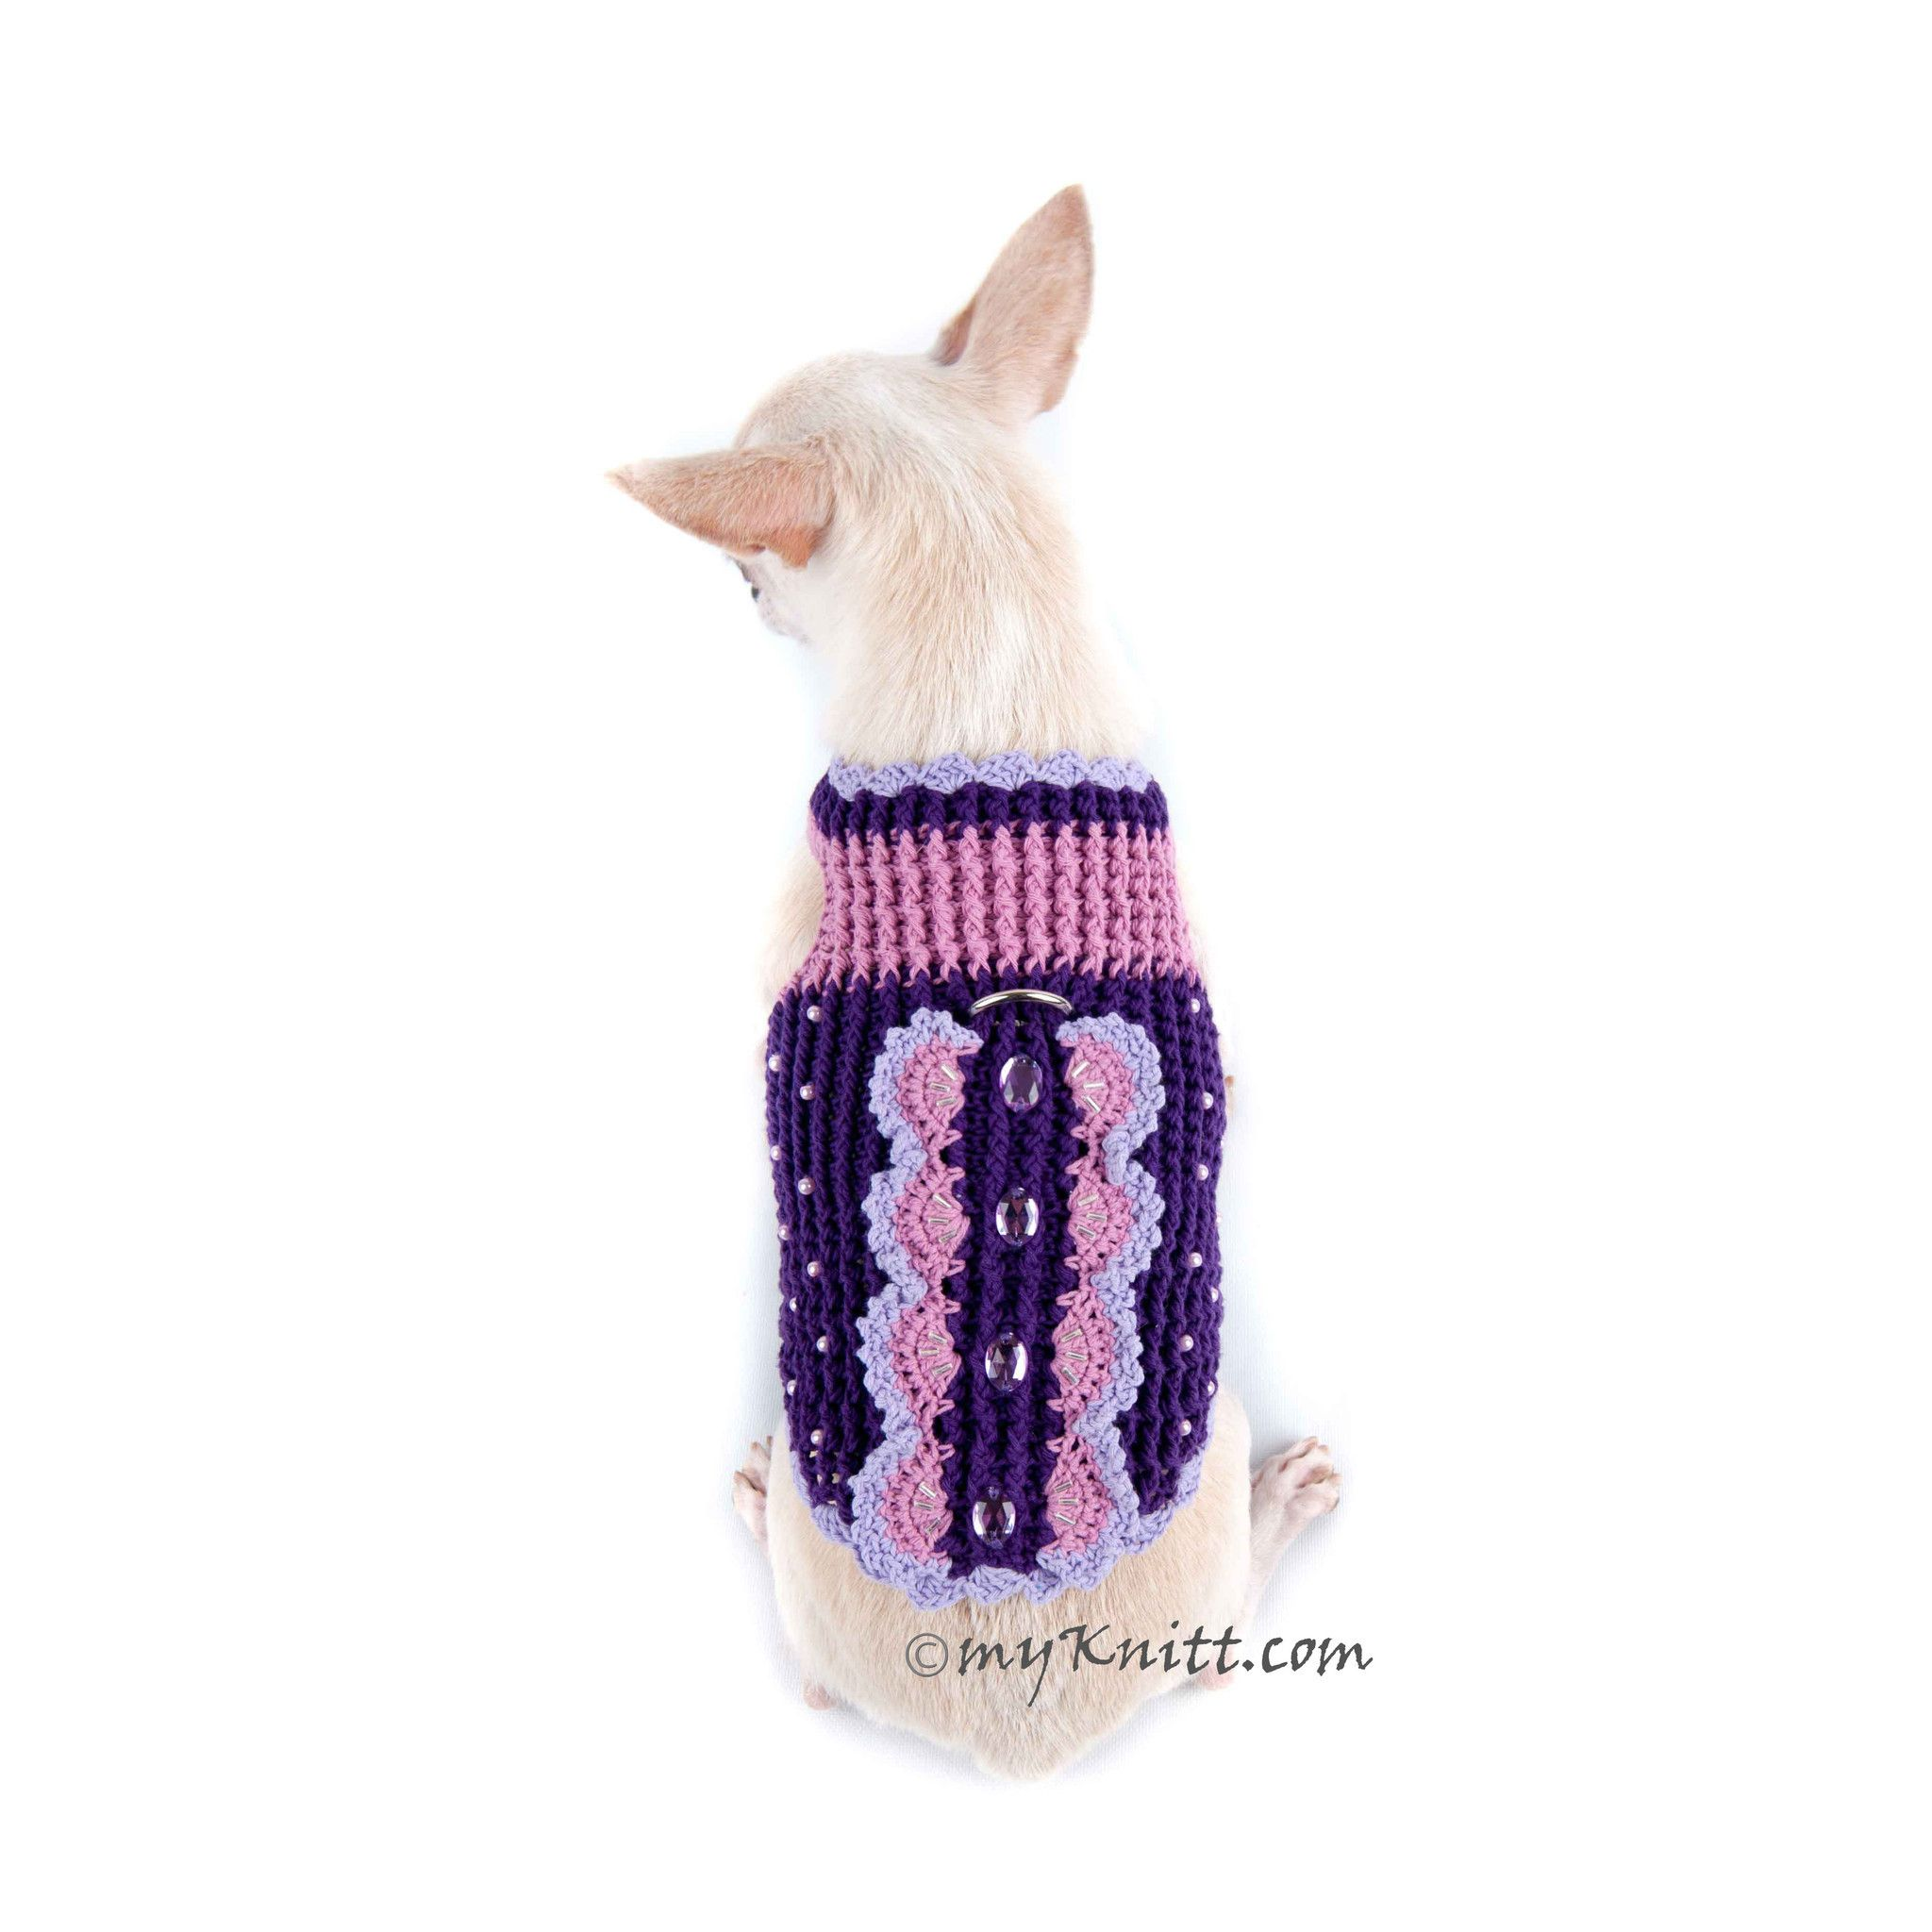 Butterfly Dog Harness Purple Summer Dog Clothes DK907 #chihuahua #knitwear #summer #myknitt #crochet #DIY